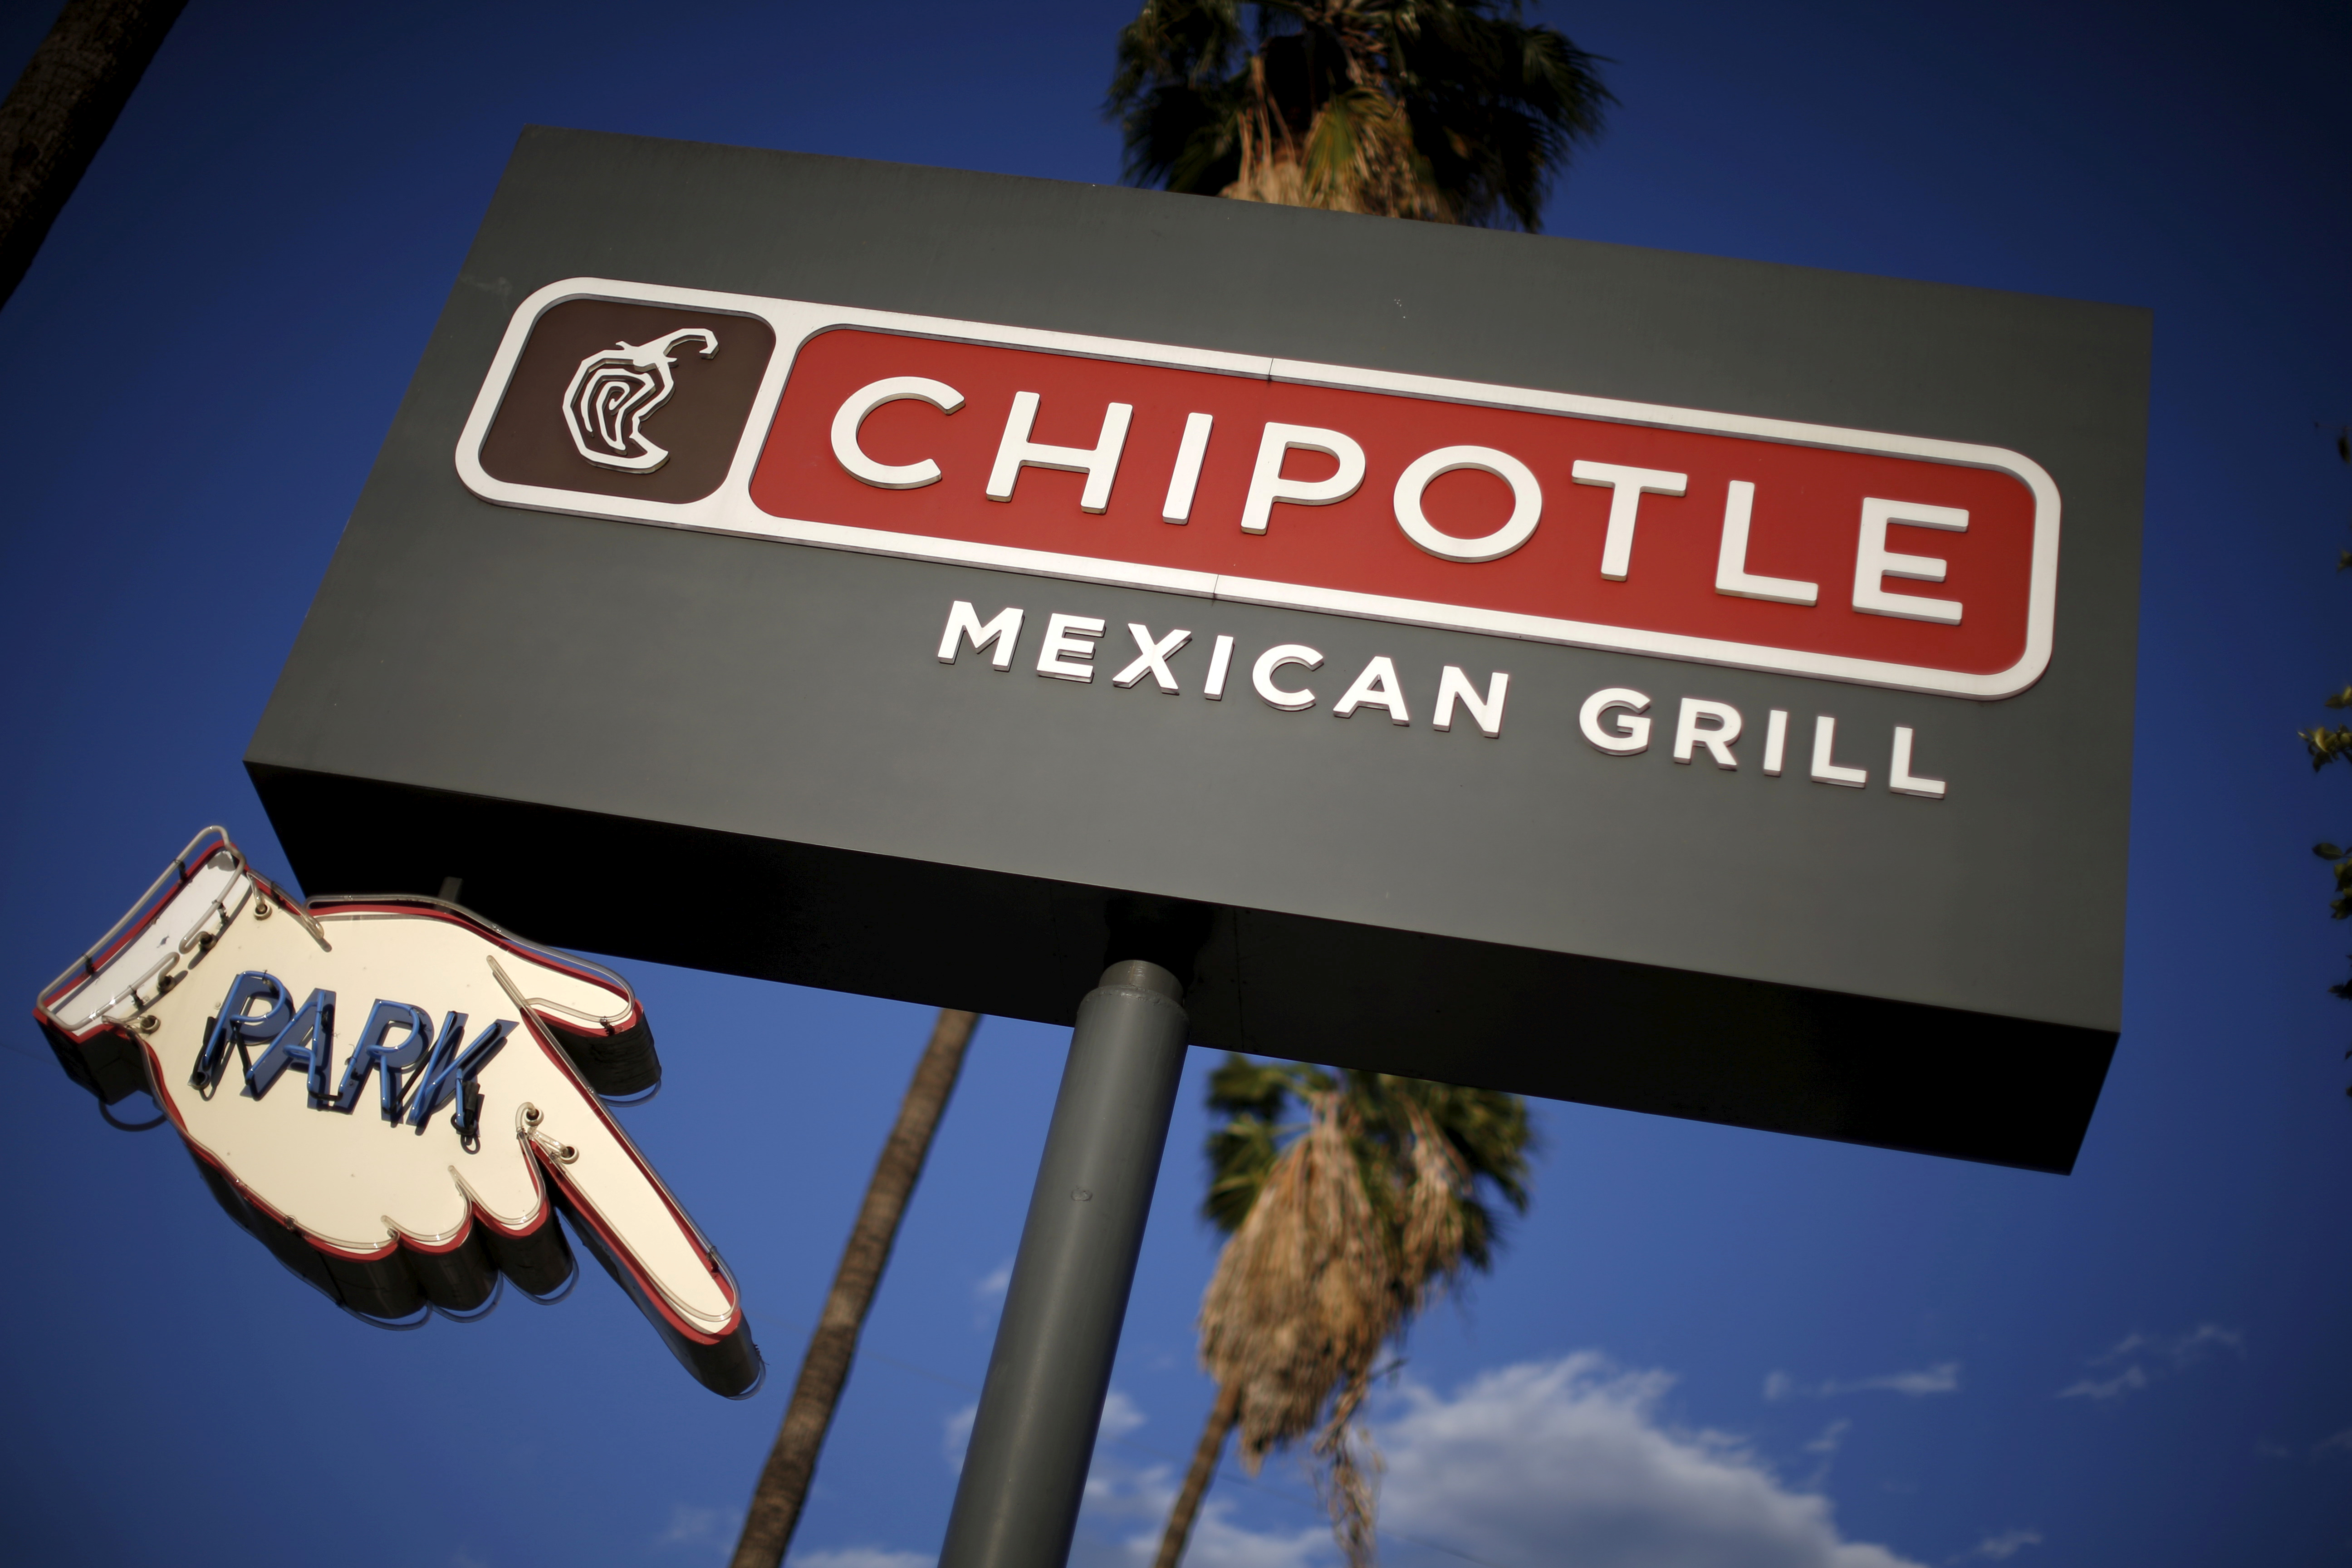 Signage for a Chipotle Mexican Grill is seen in Los Angeles